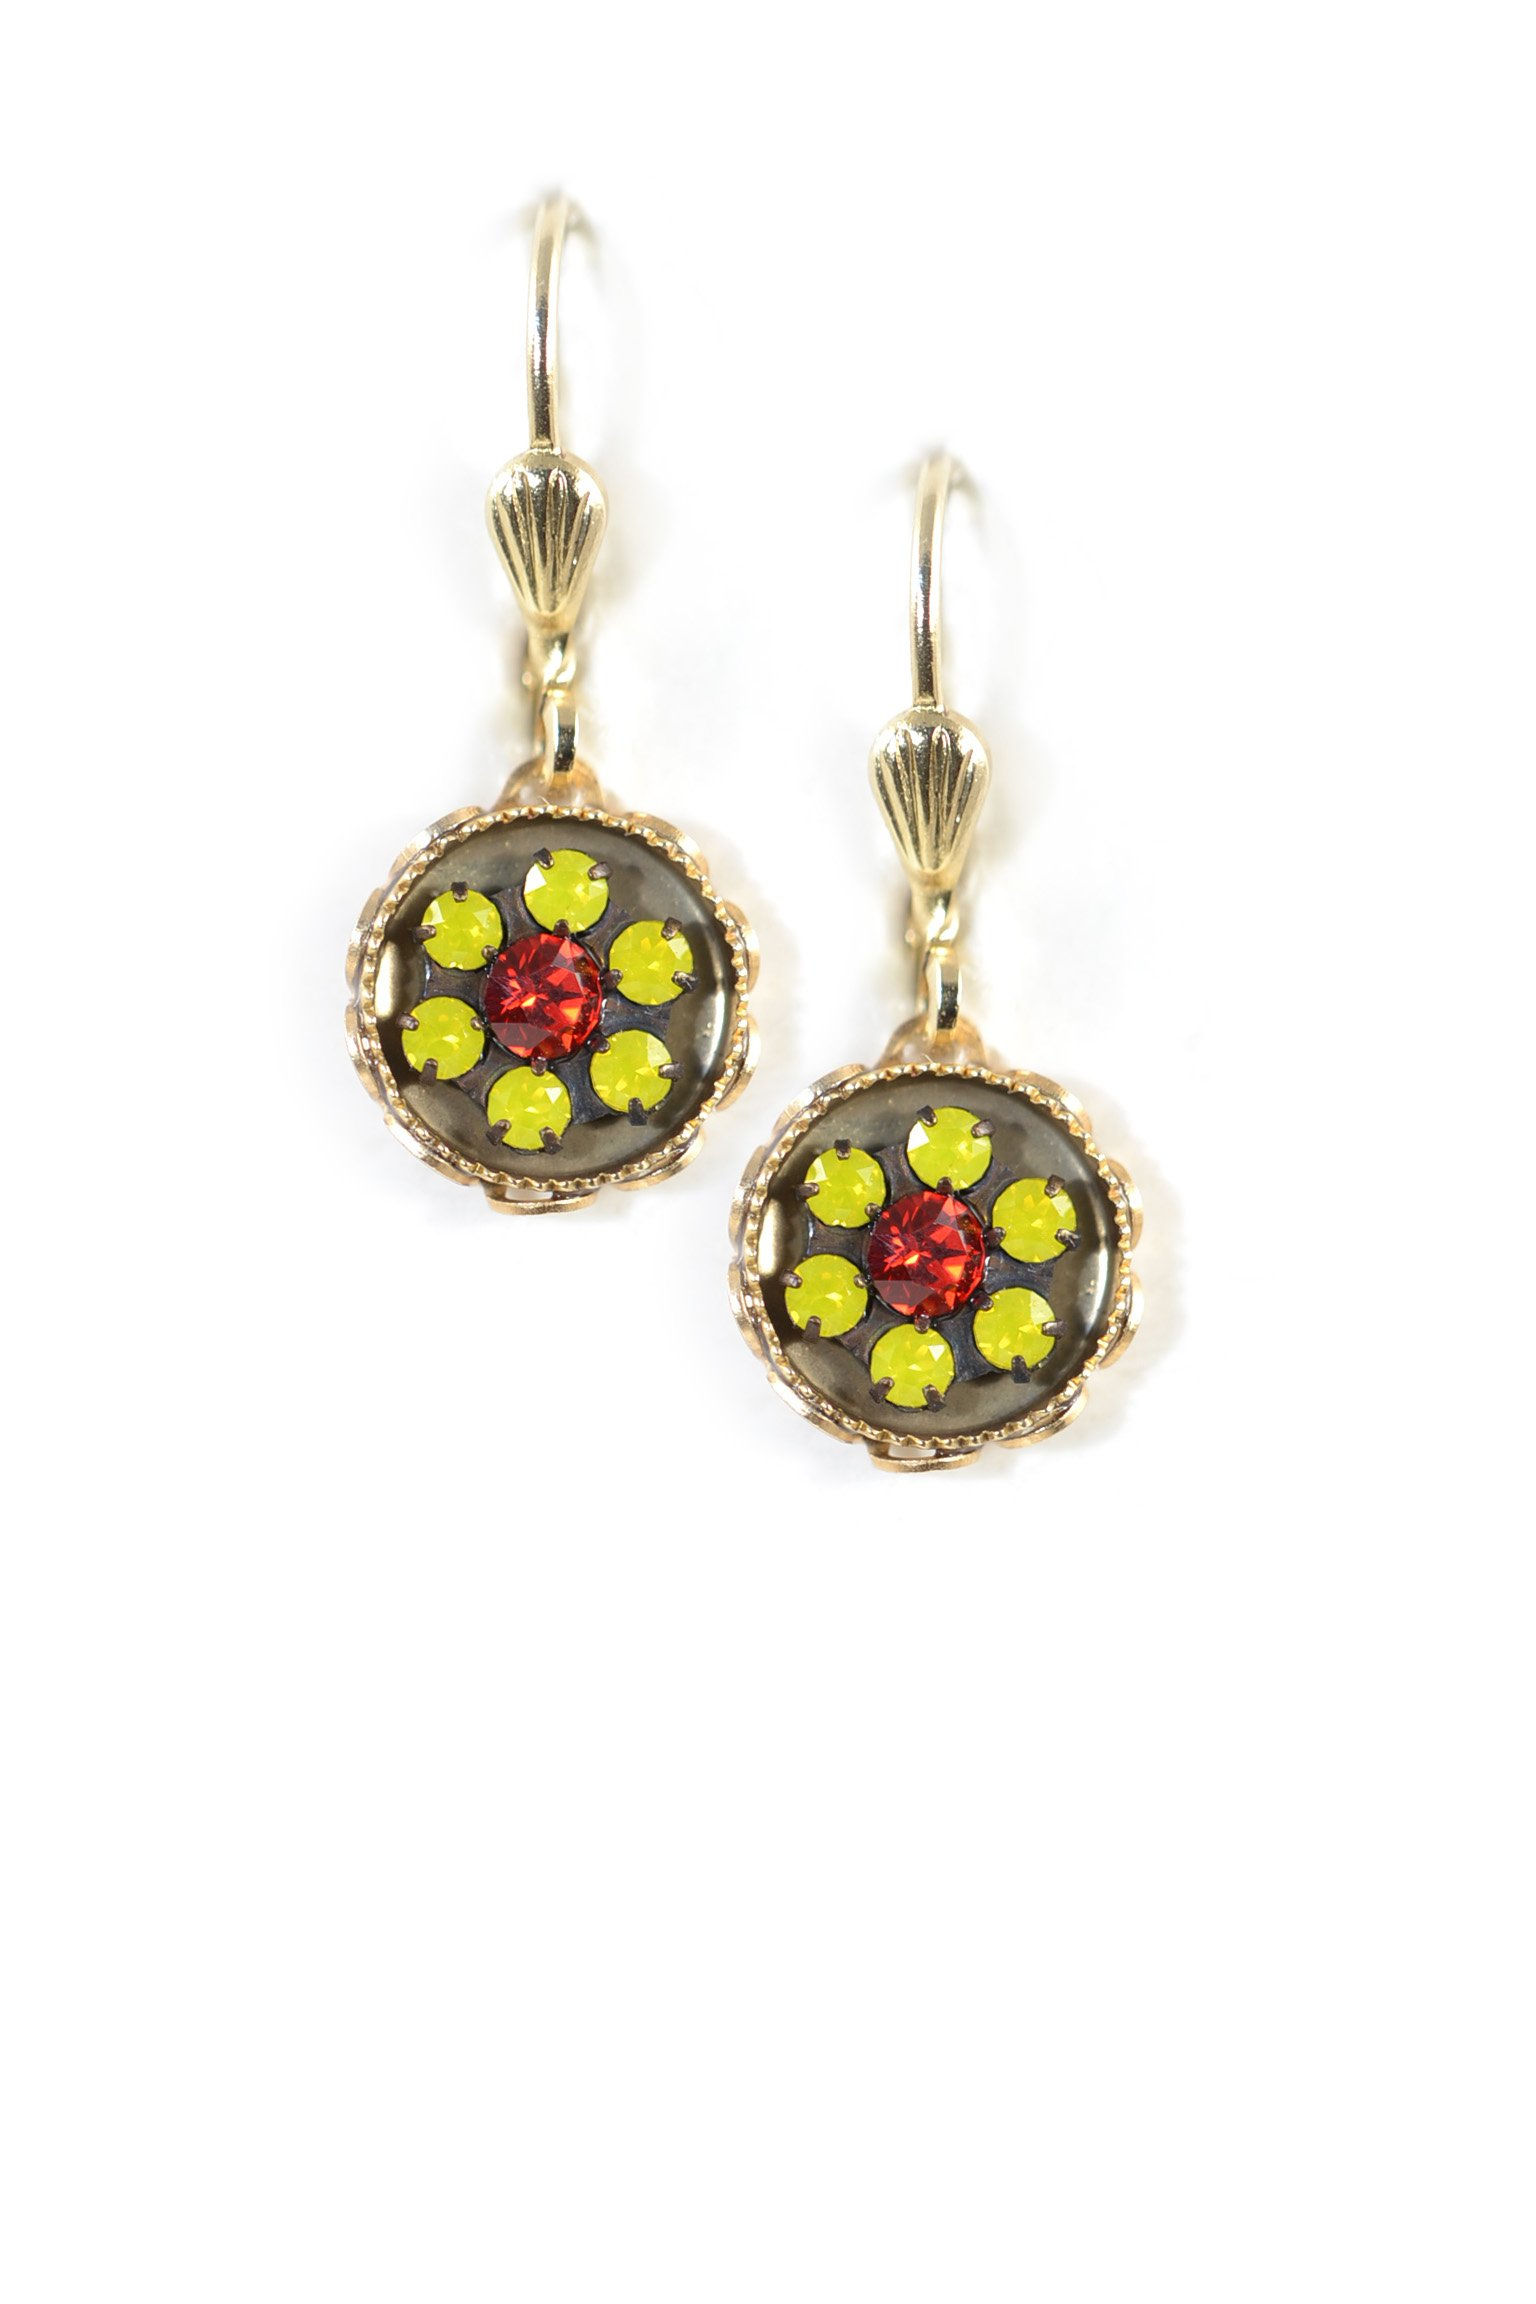 Clara Beau Yellow Red Color Combo Swarovski Glass Crystal Round Goldtone Dangle Earrings EG247